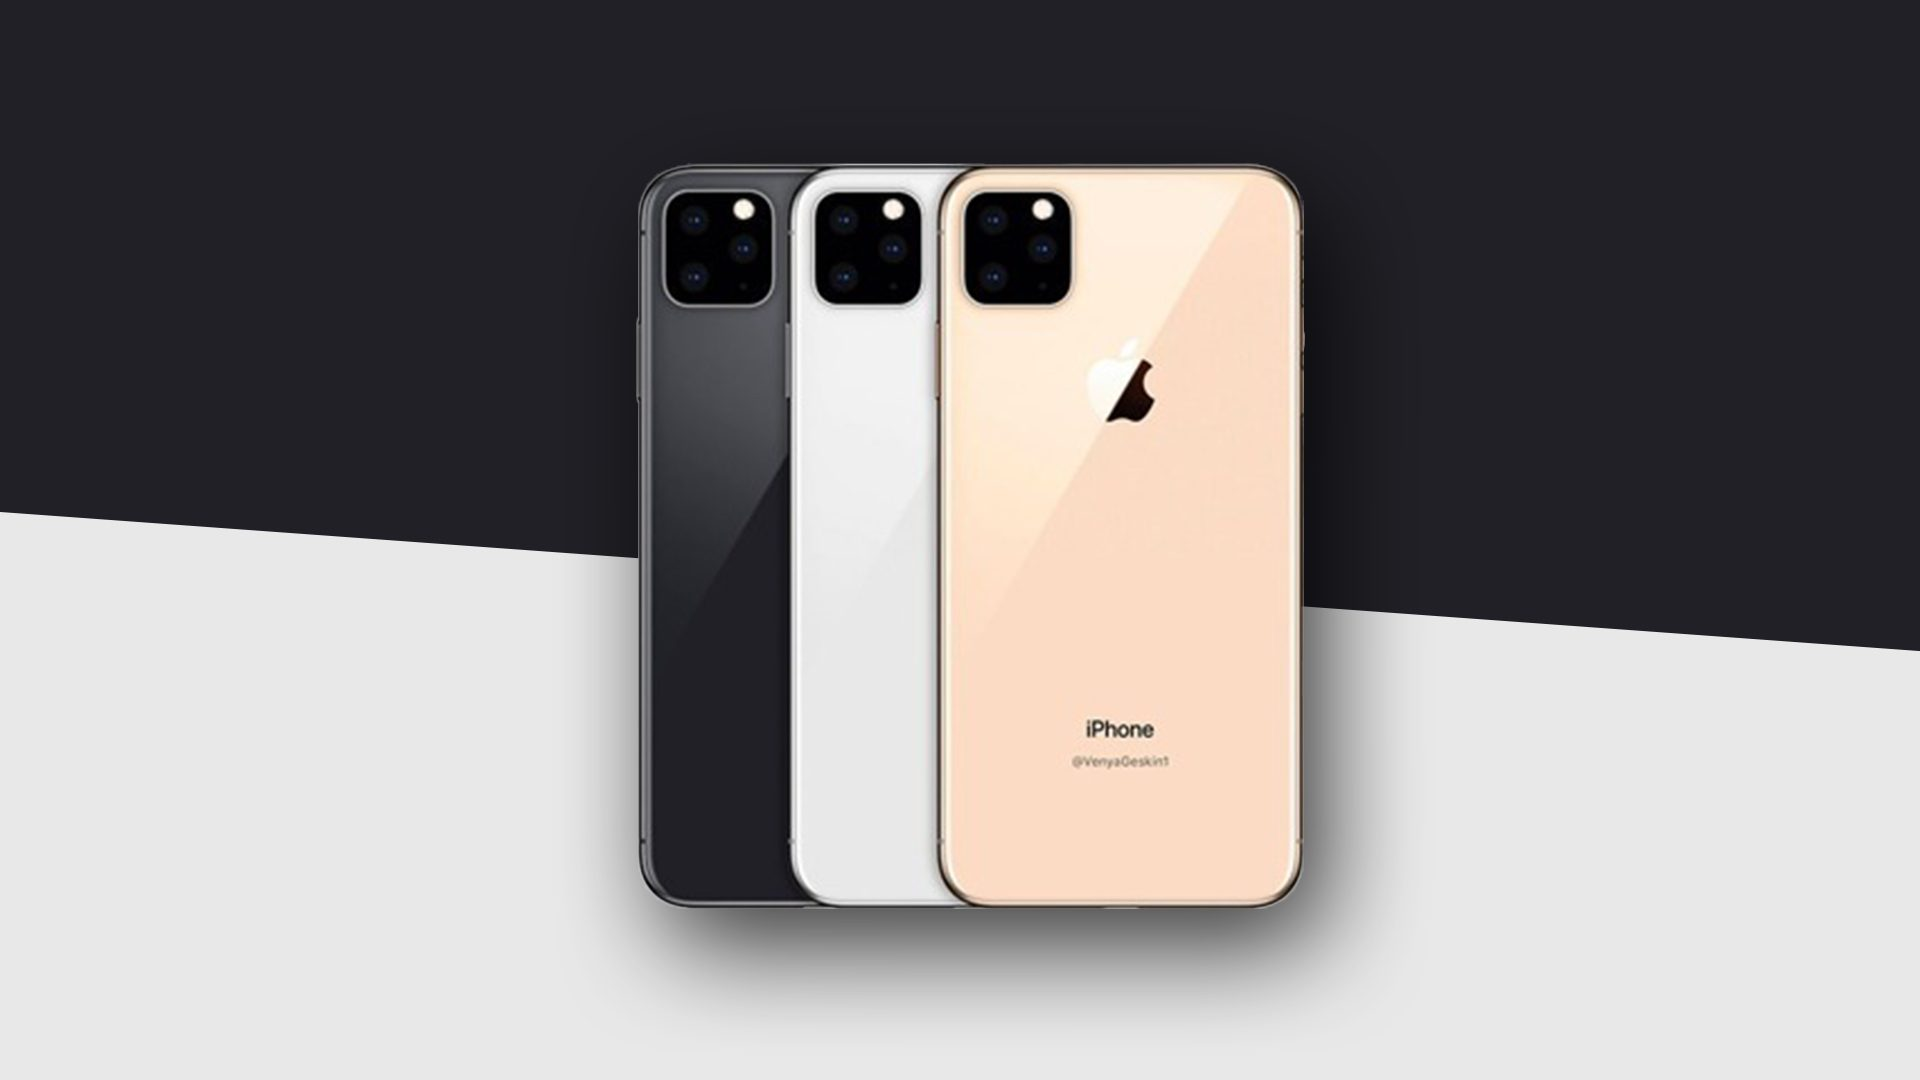 iPhone XI : device svelato da nuovi render